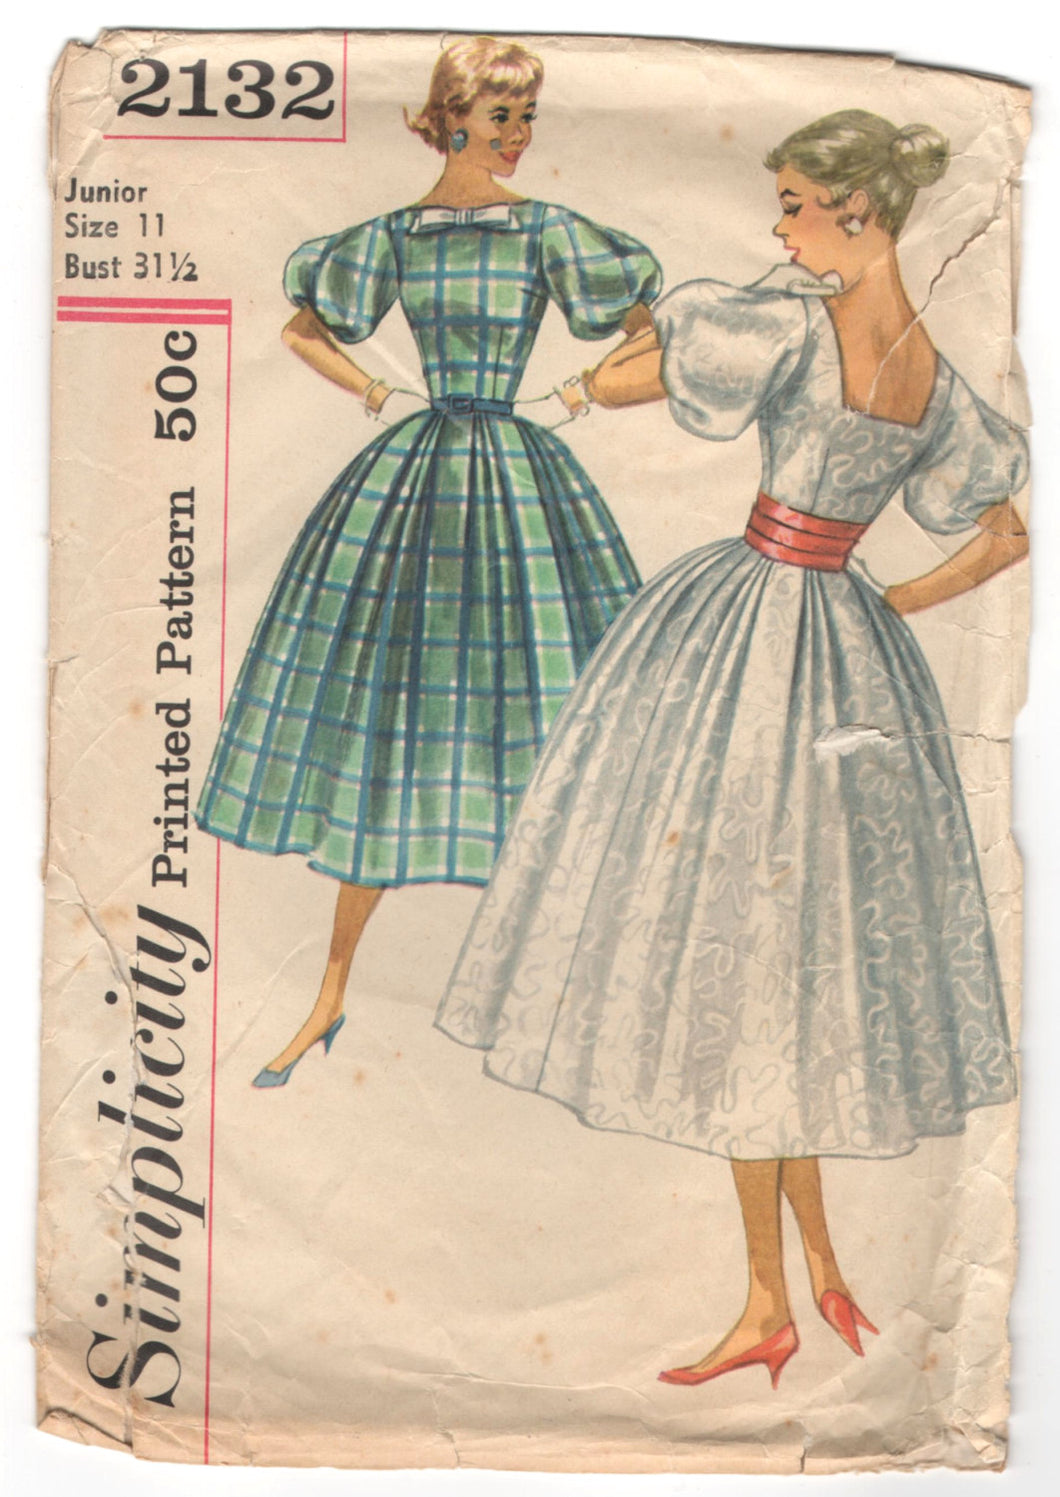 1950's Simplicity Rockabilly Dress pattern with Bow Detail - Bust 31.5